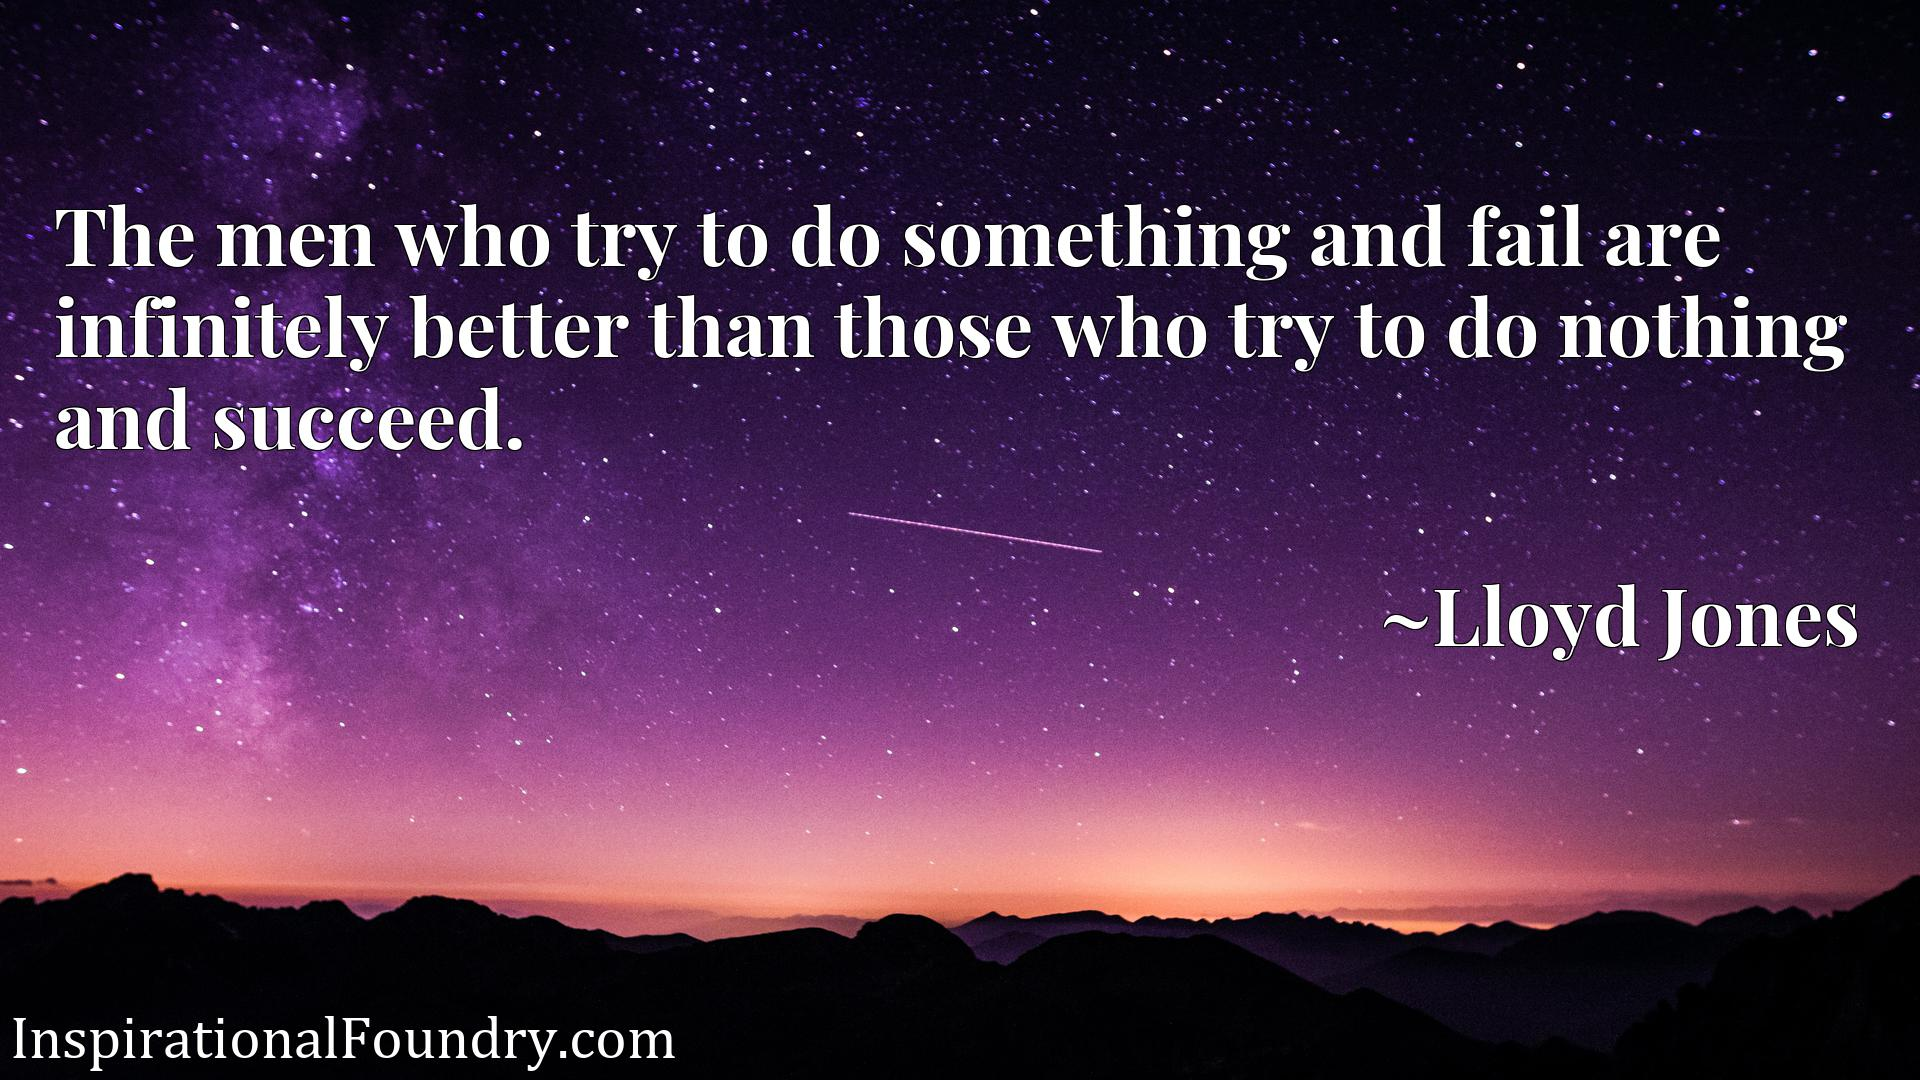 The men who try to do something and fail are infinitely better than those who try to do nothing and succeed.